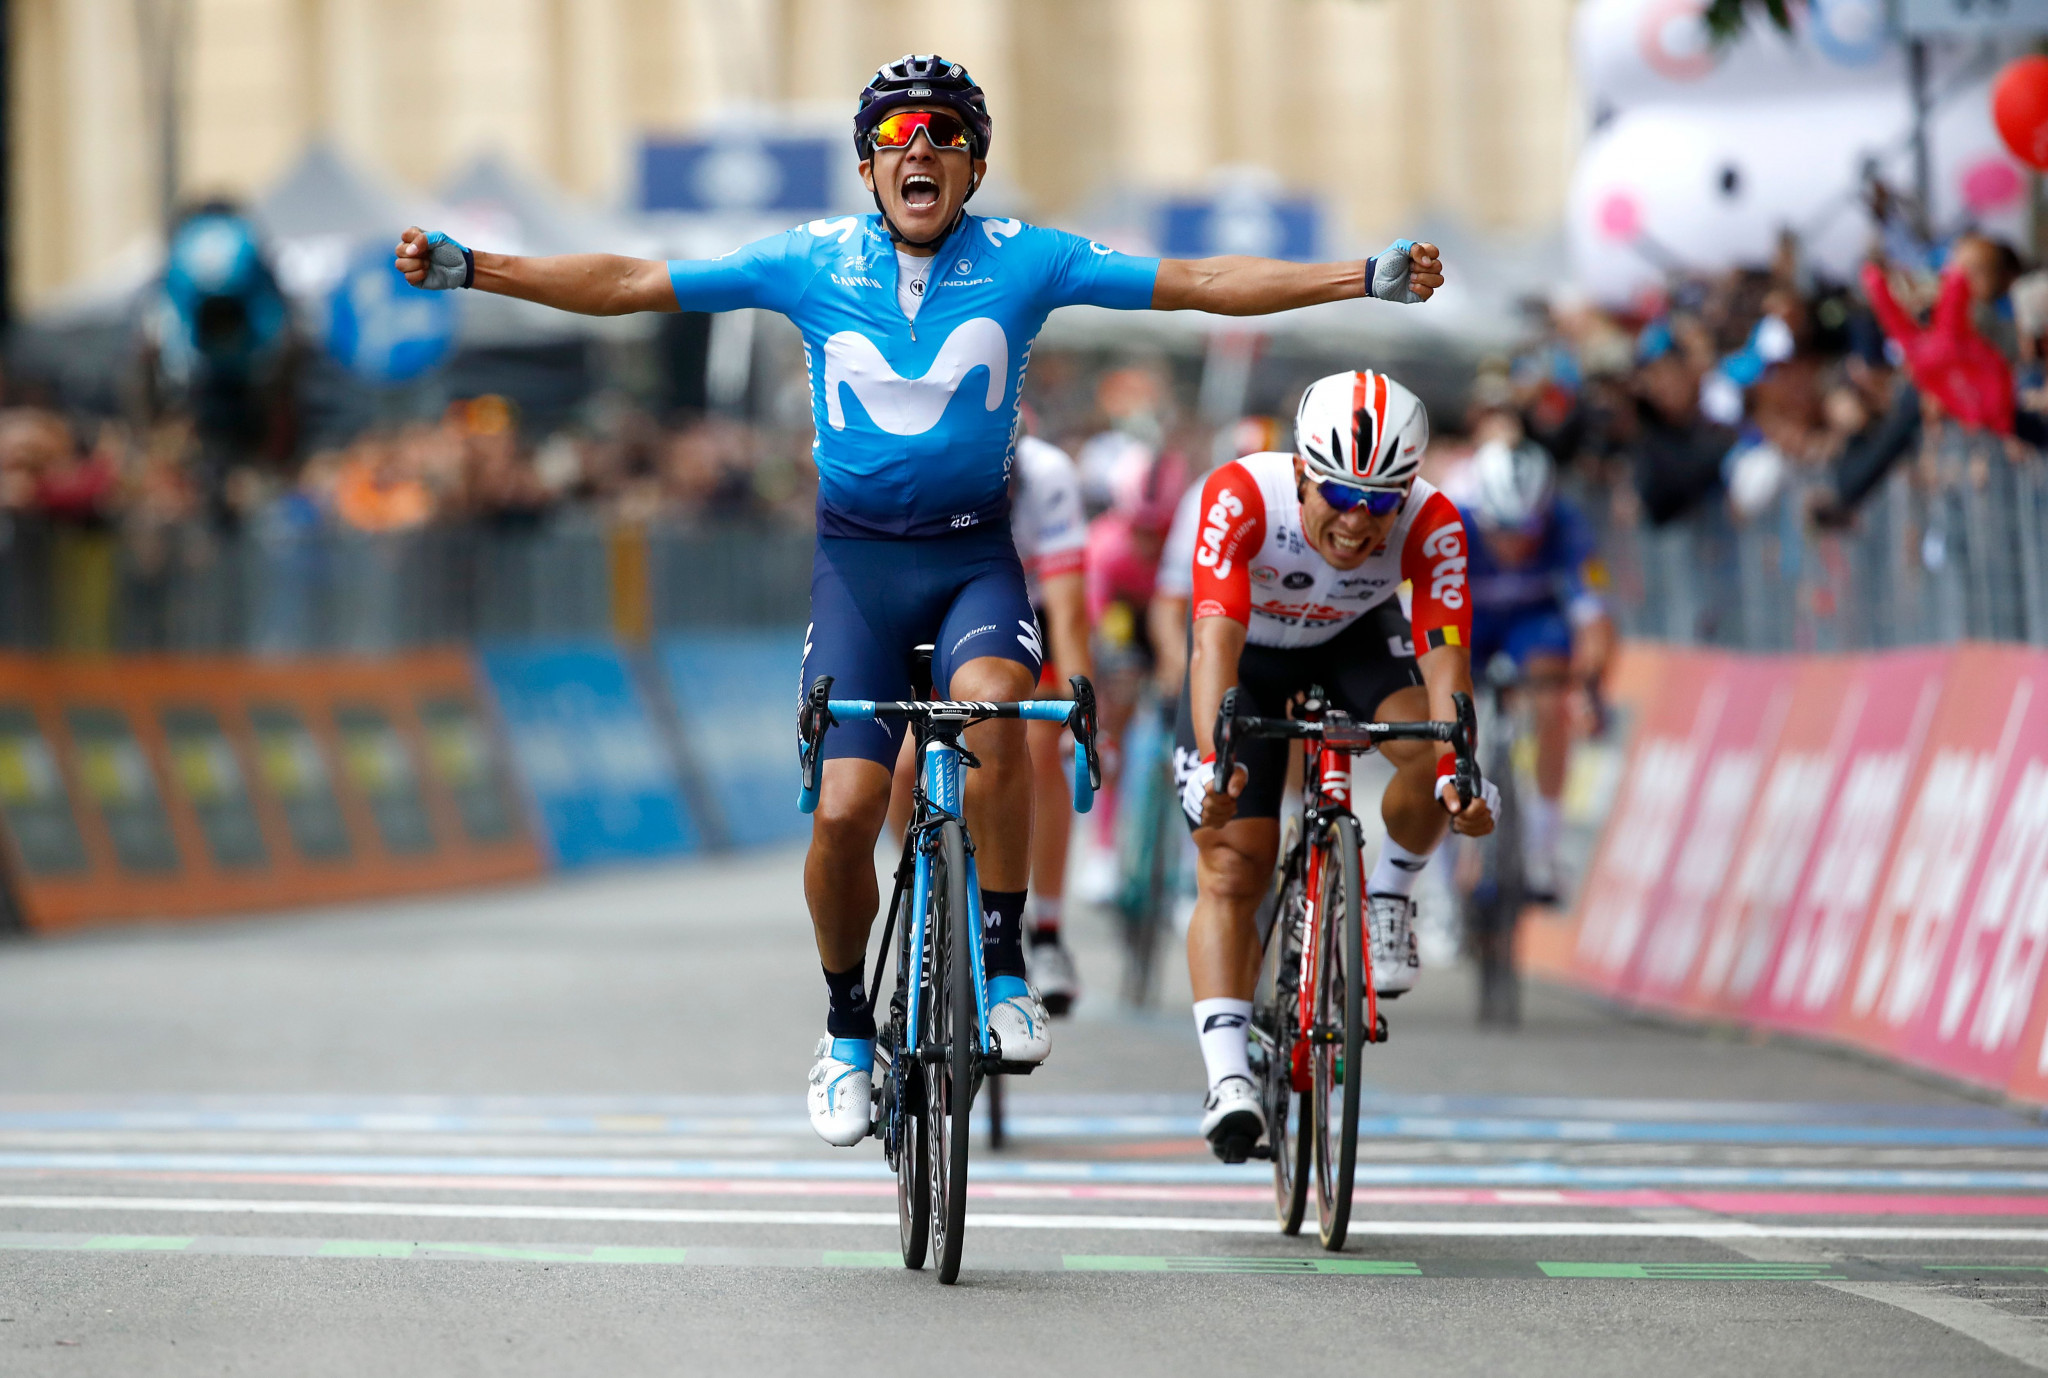 Ecuador's Richard Carapaz wins a dramatic fourth stage at the Giro d'Italia ©Getty Images